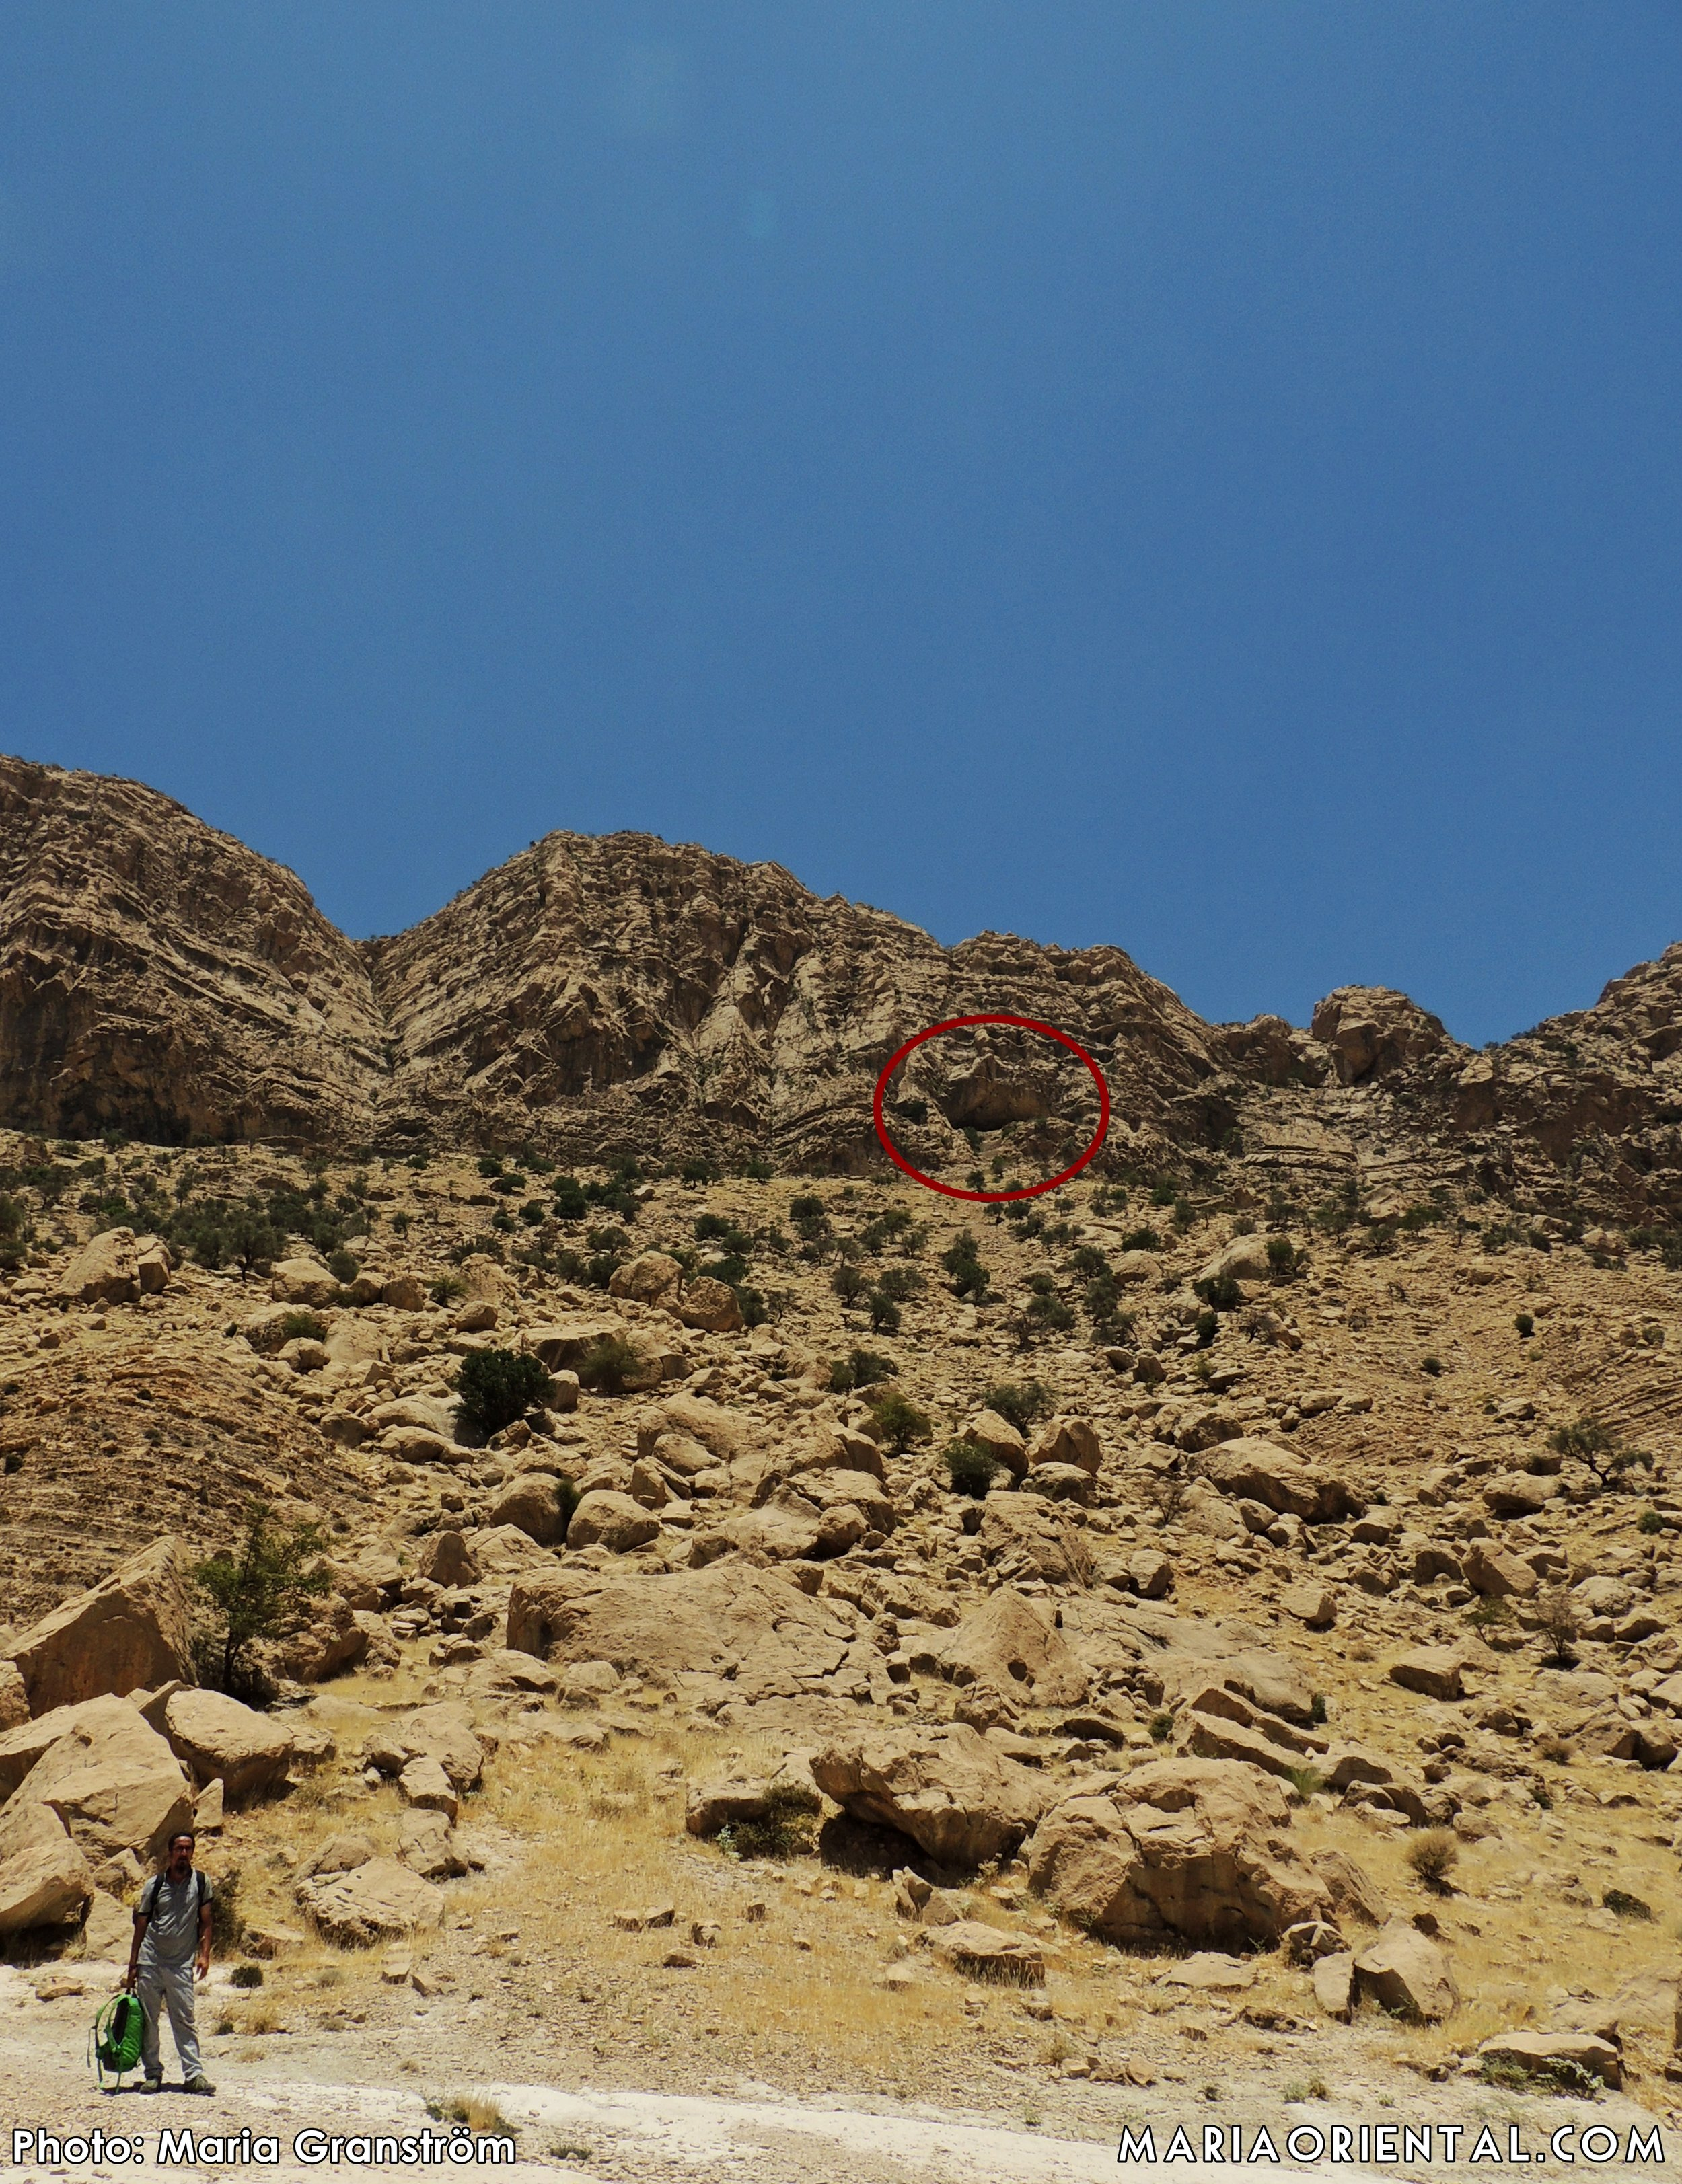 Half way there. The cave entrance is marked with a red circle.